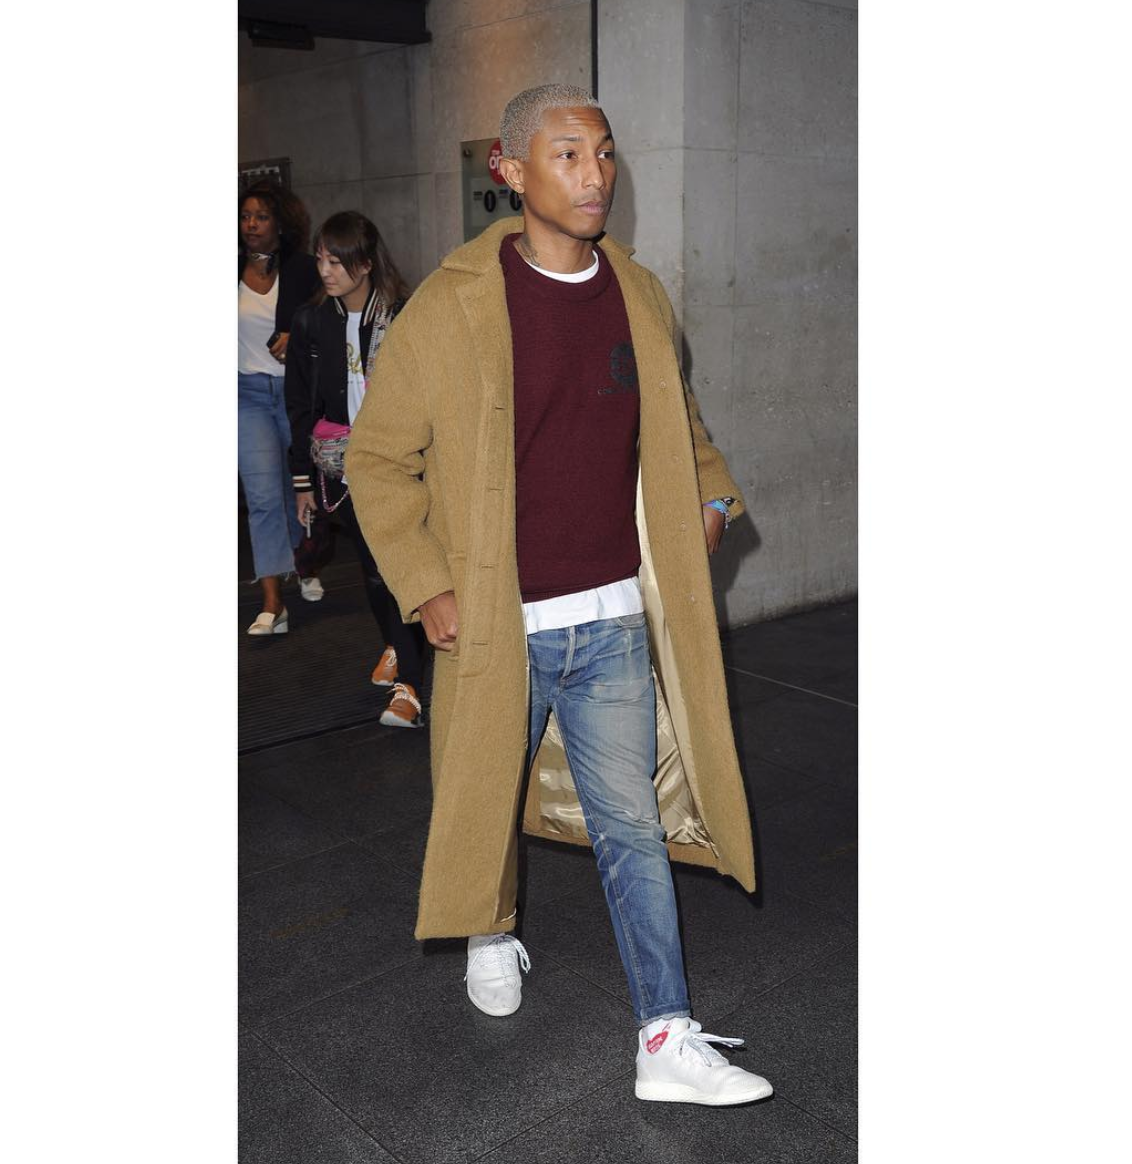 SPOTTED: Pharrell Williams In Long Coat, Human Made Socks And adidas Sneakers